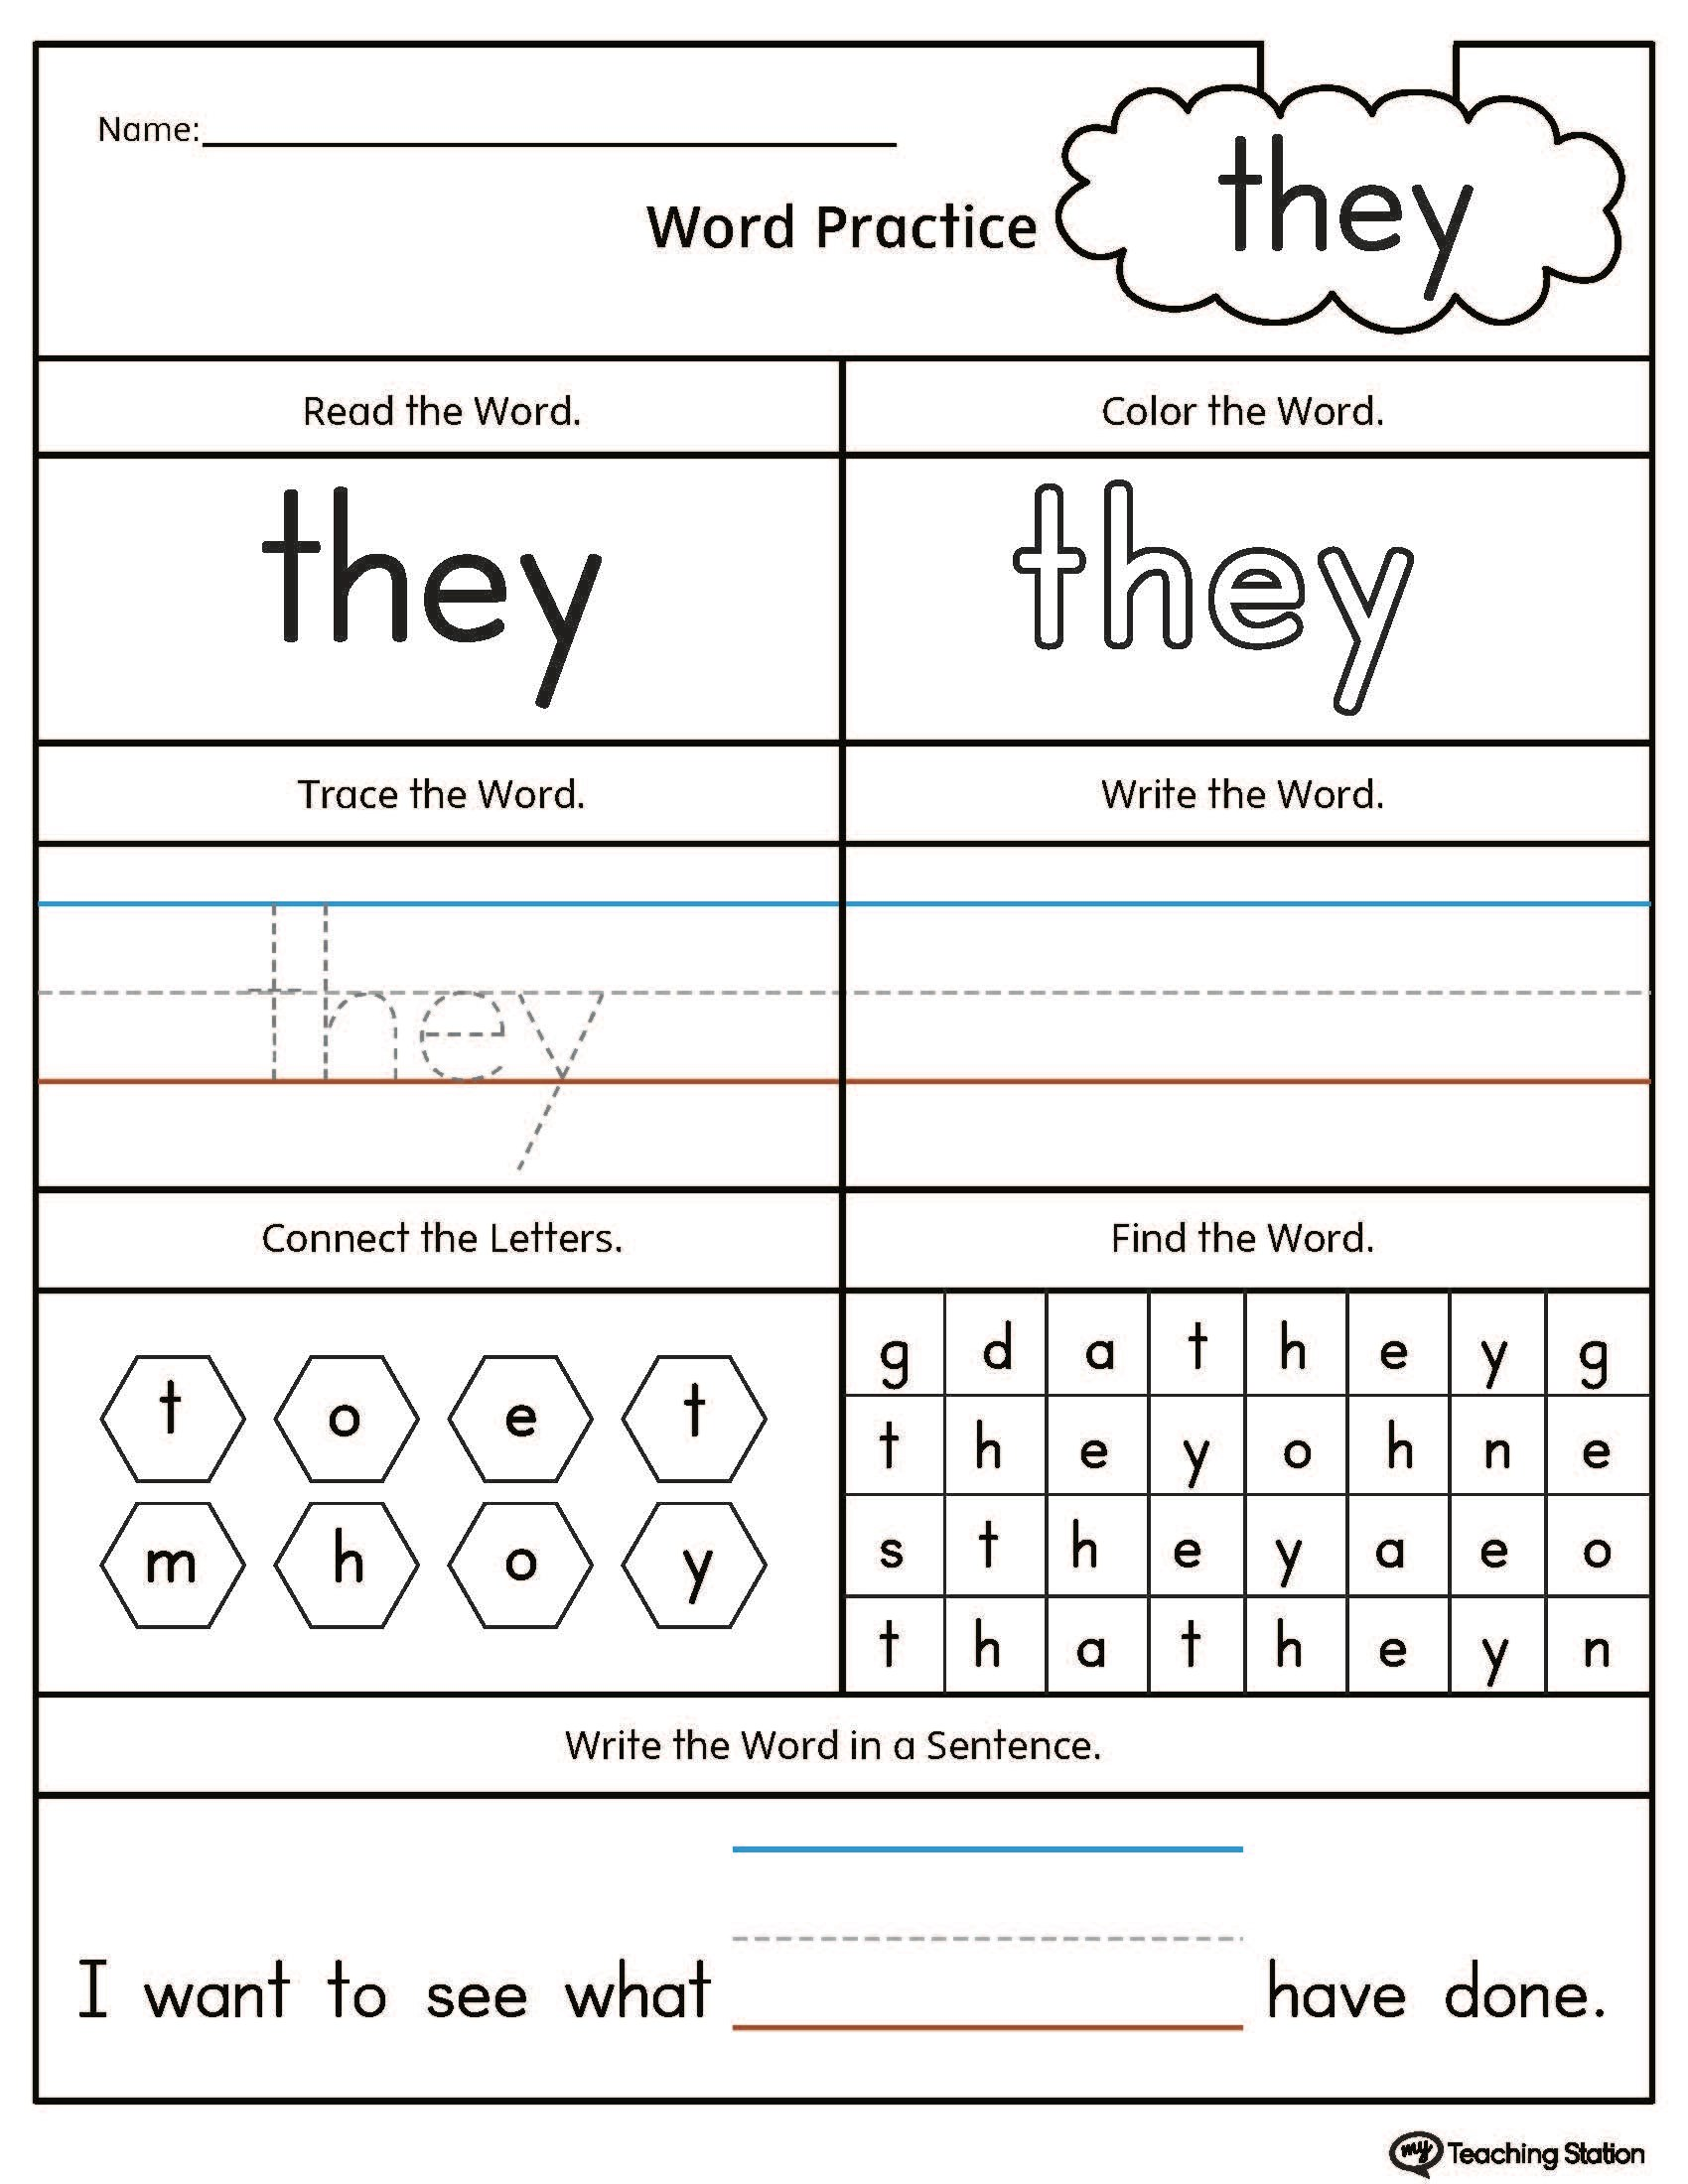 Best Free Printable Worksheets Eleaseit